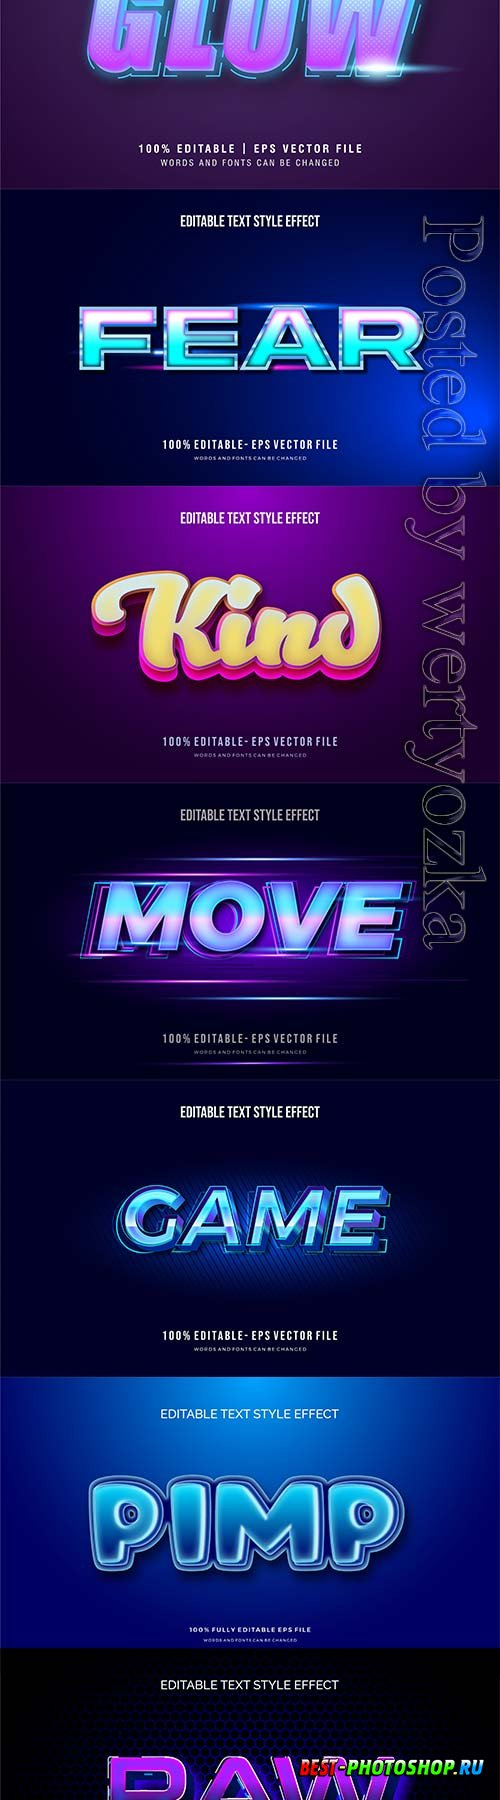 3d editable text style effect vector vol 304